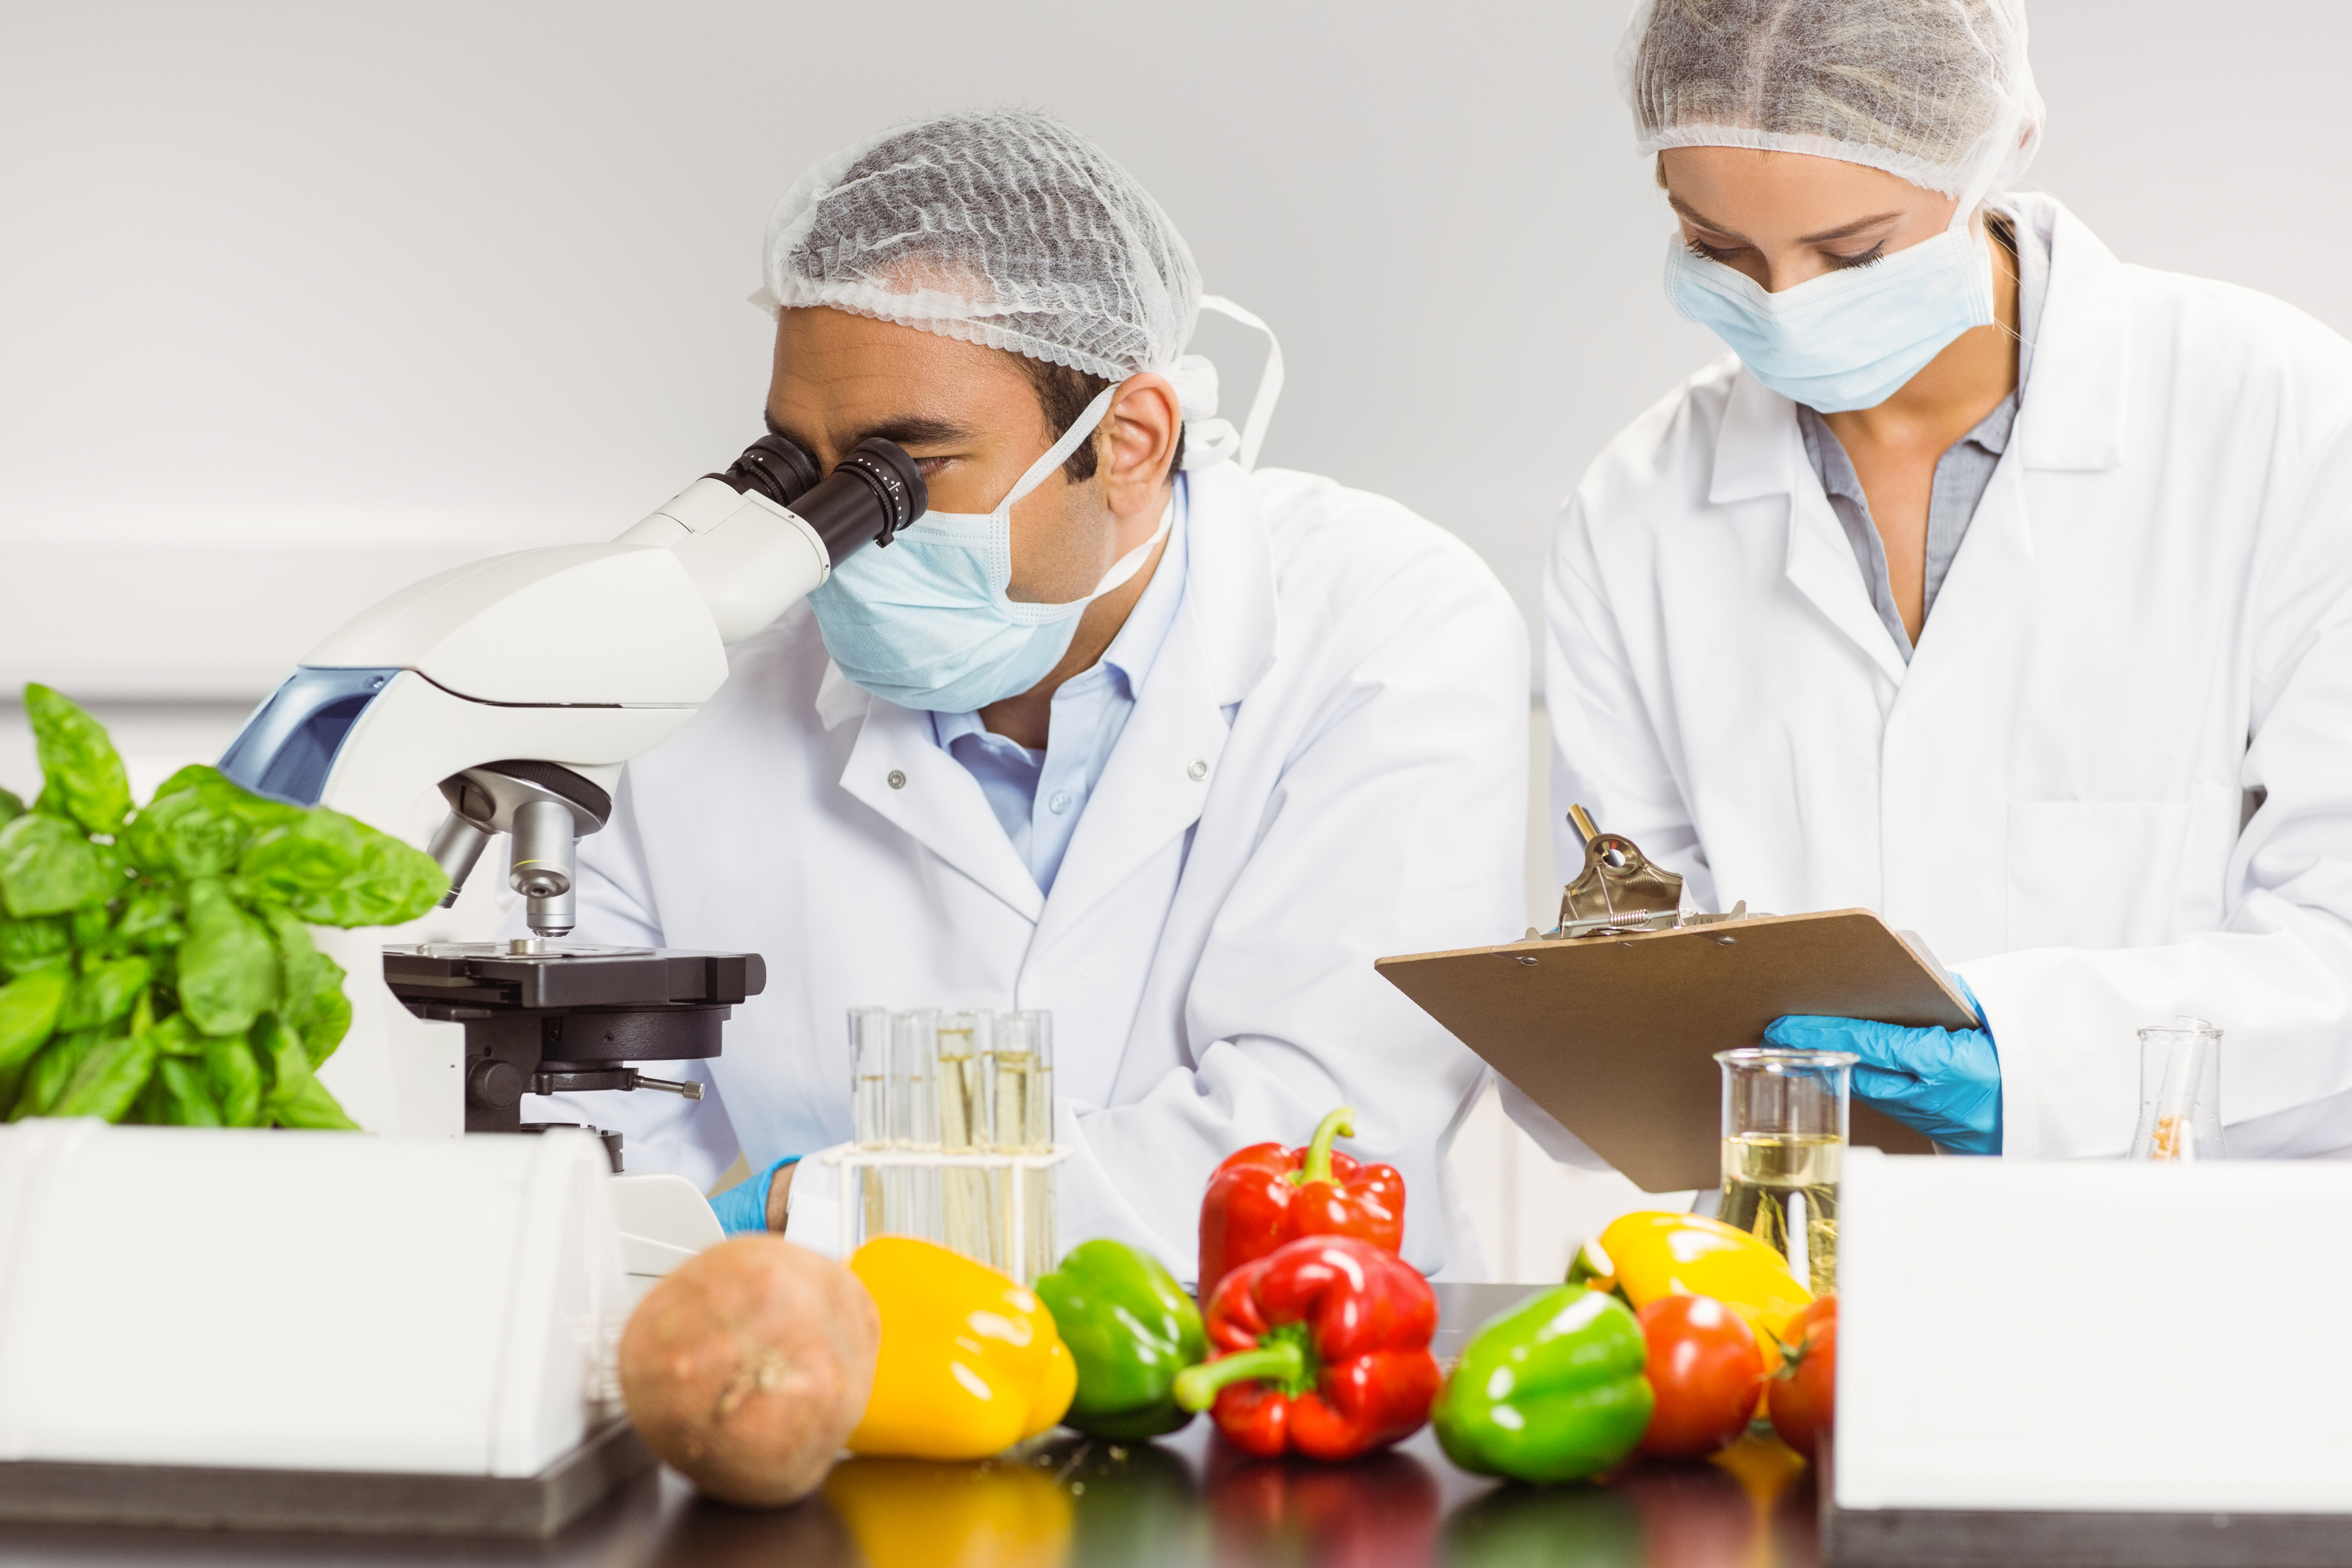 food safety | food | myths | food safety myths | safety | health | food health | debunking food safety myths